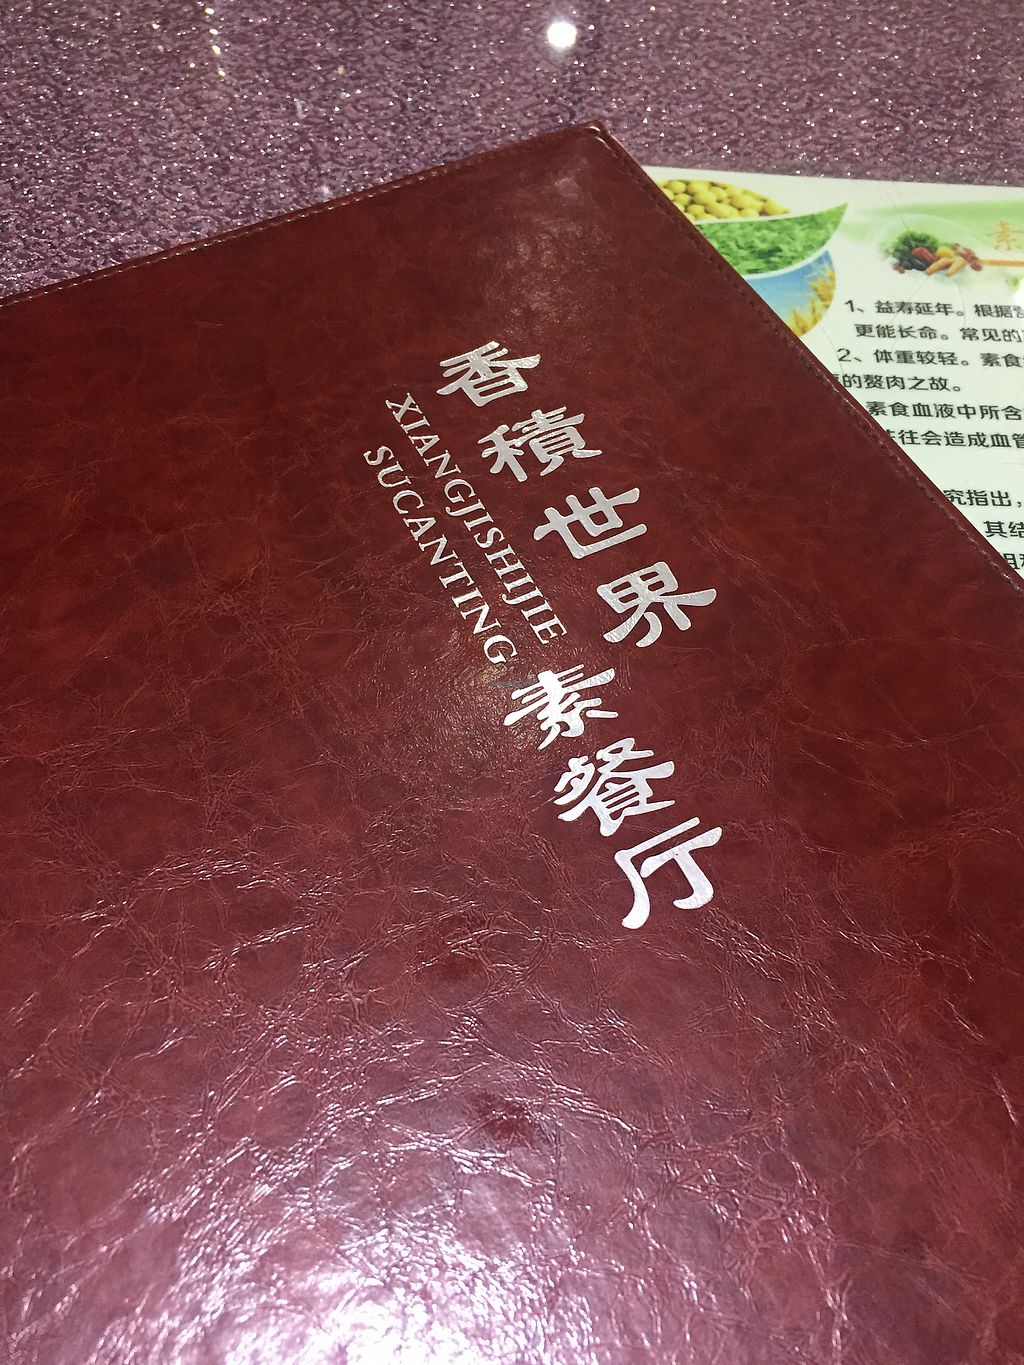 """Photo of Xiang Ji Shi Jie  by <a href=""""/members/profile/jalchemy"""">jalchemy</a> <br/>Here is the menu, feel free to use google translate if the pictures don't help <br/> April 3, 2018  - <a href='/contact/abuse/image/18287/380074'>Report</a>"""